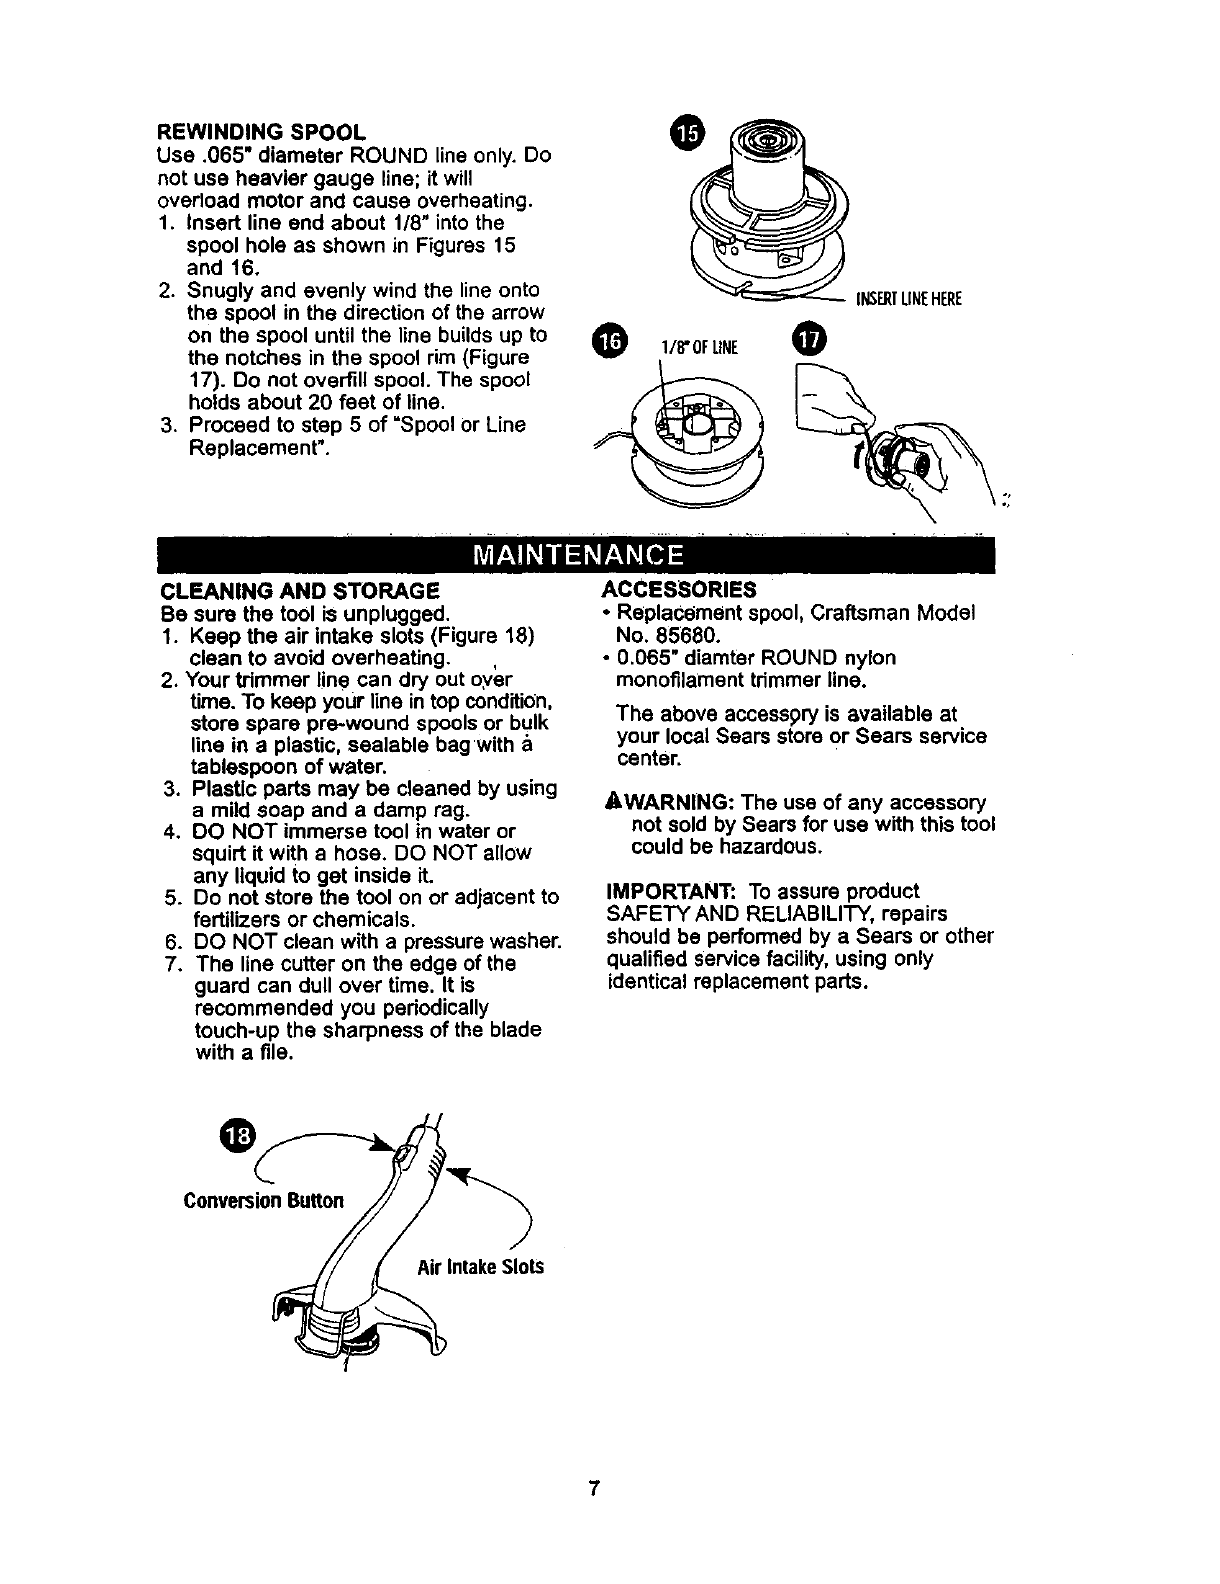 Page 7 of Craftsman Trimmer 900-74522 User Guide